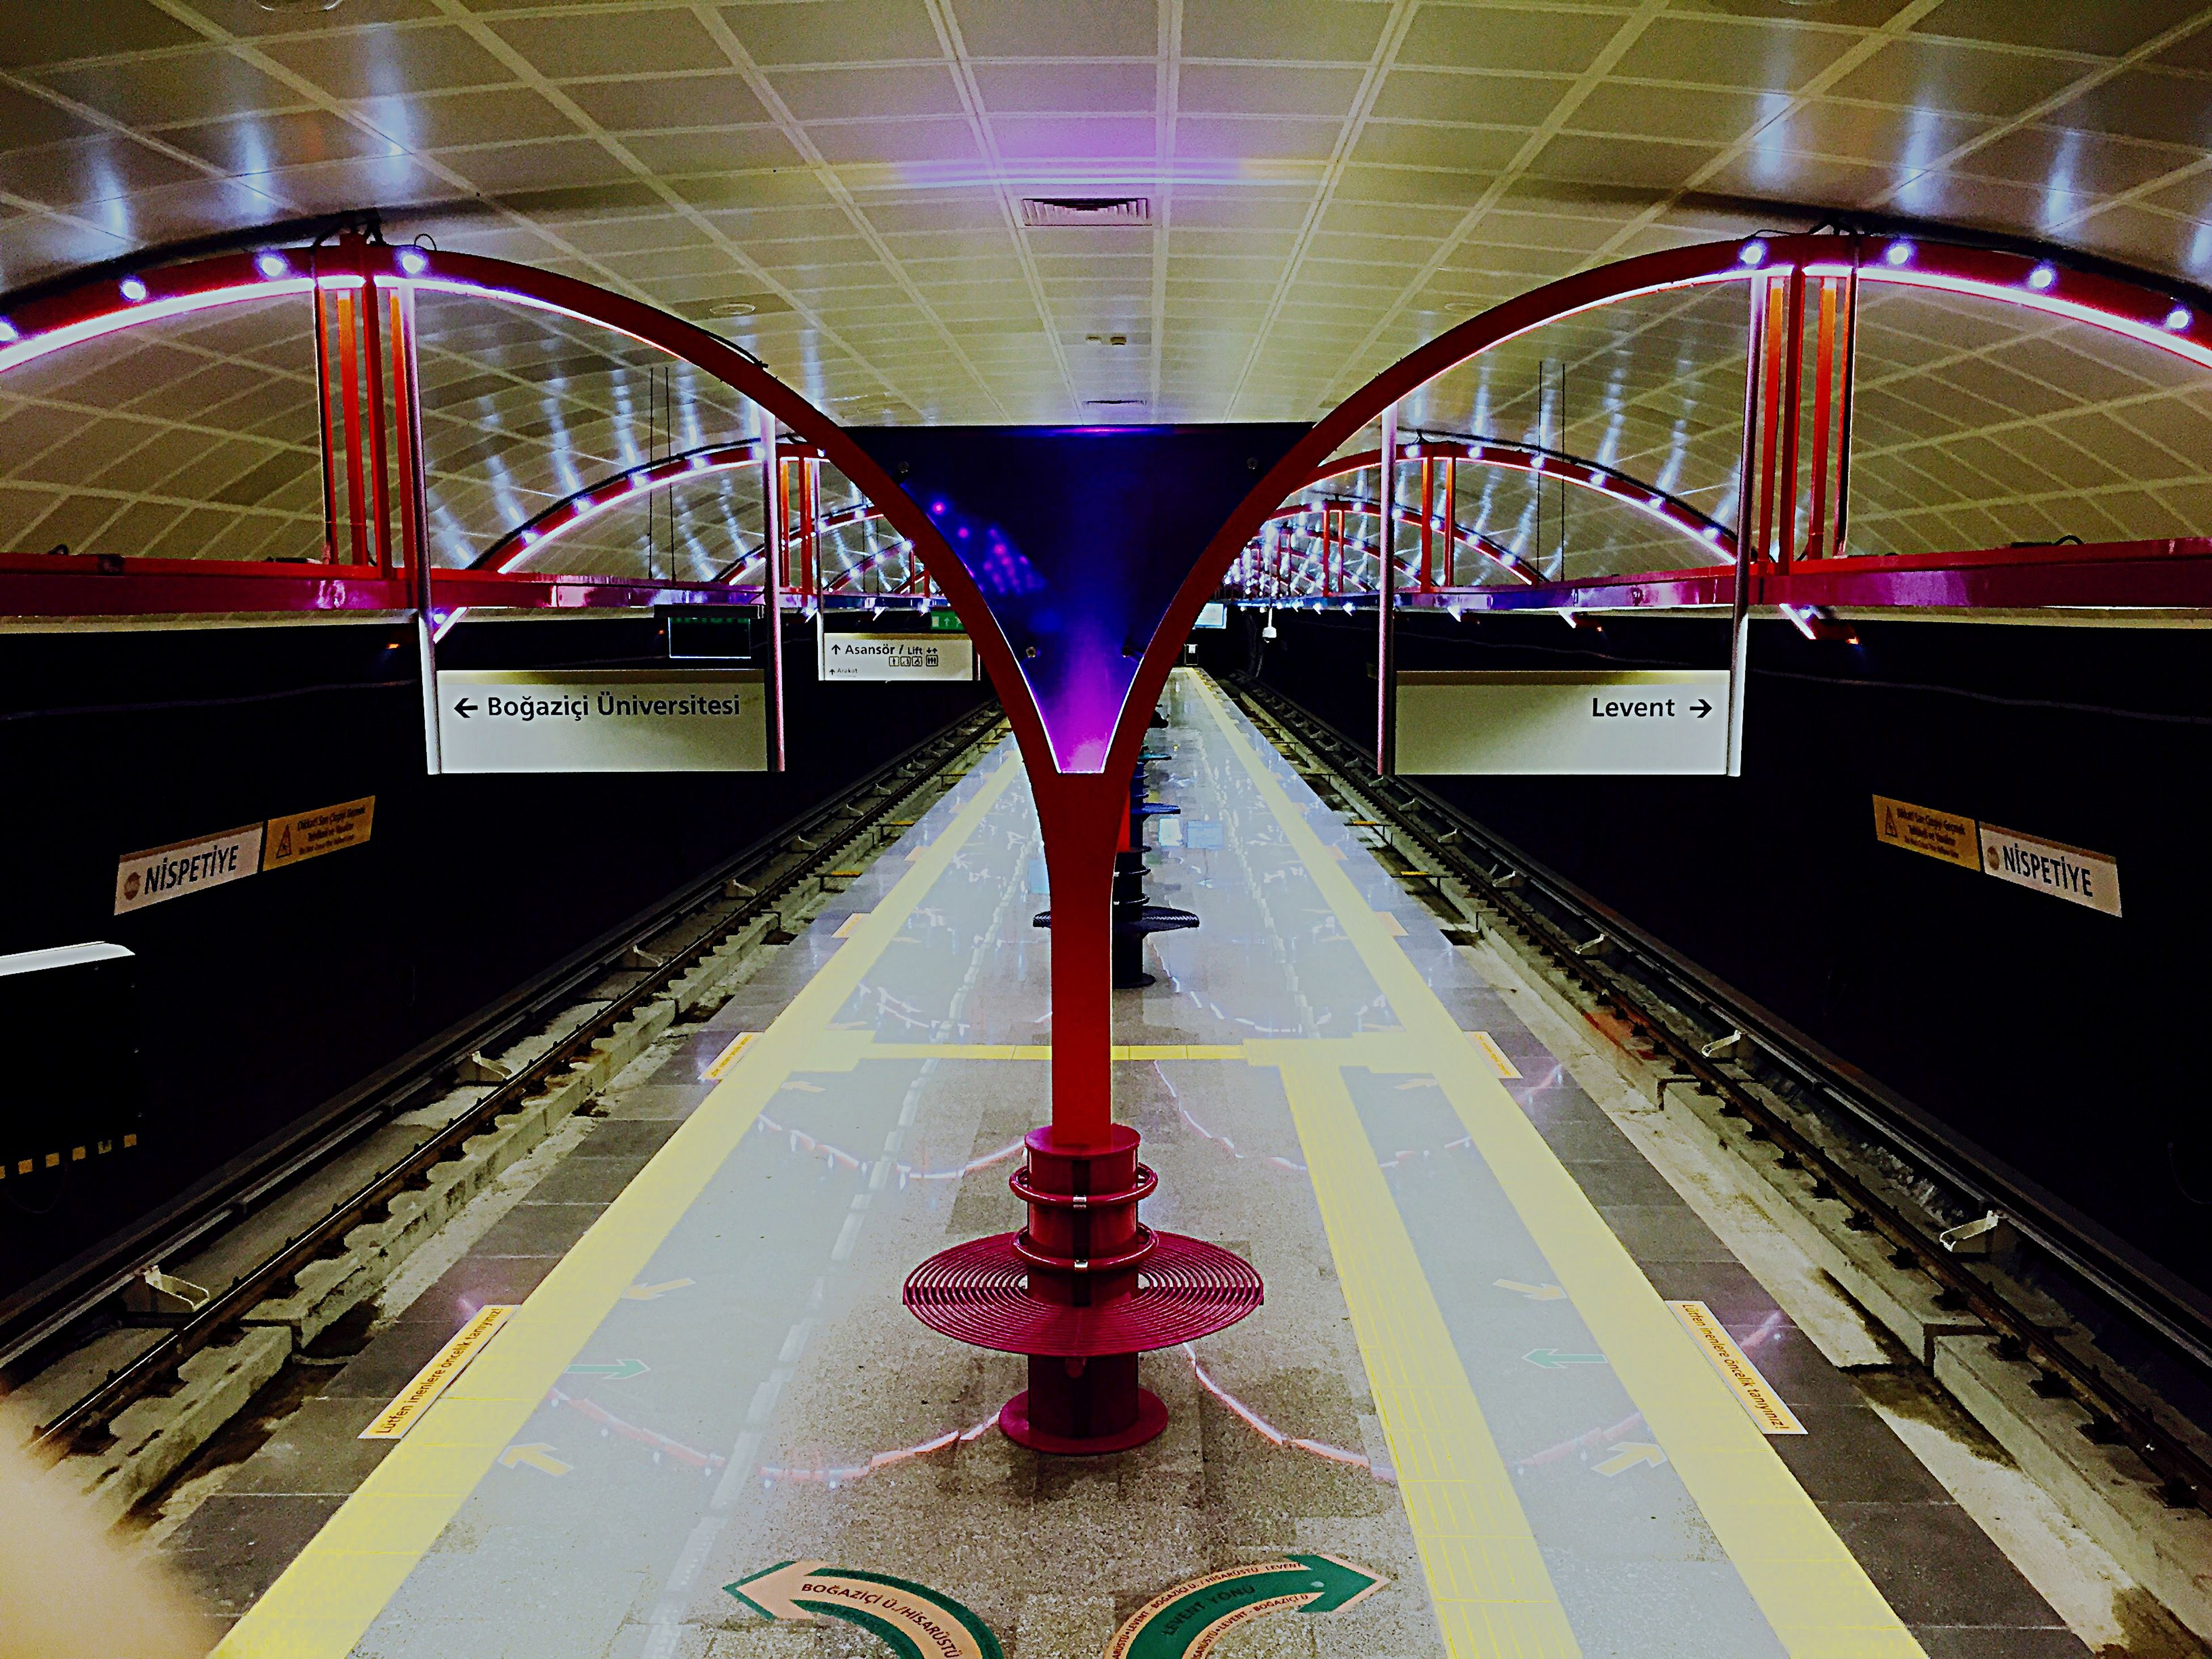 indoors, railroad station, transportation, illuminated, public transportation, rail transportation, railroad station platform, subway station, railroad track, architecture, travel, built structure, ceiling, train - vehicle, transportation building - type of building, subway, interior, incidental people, station, arch